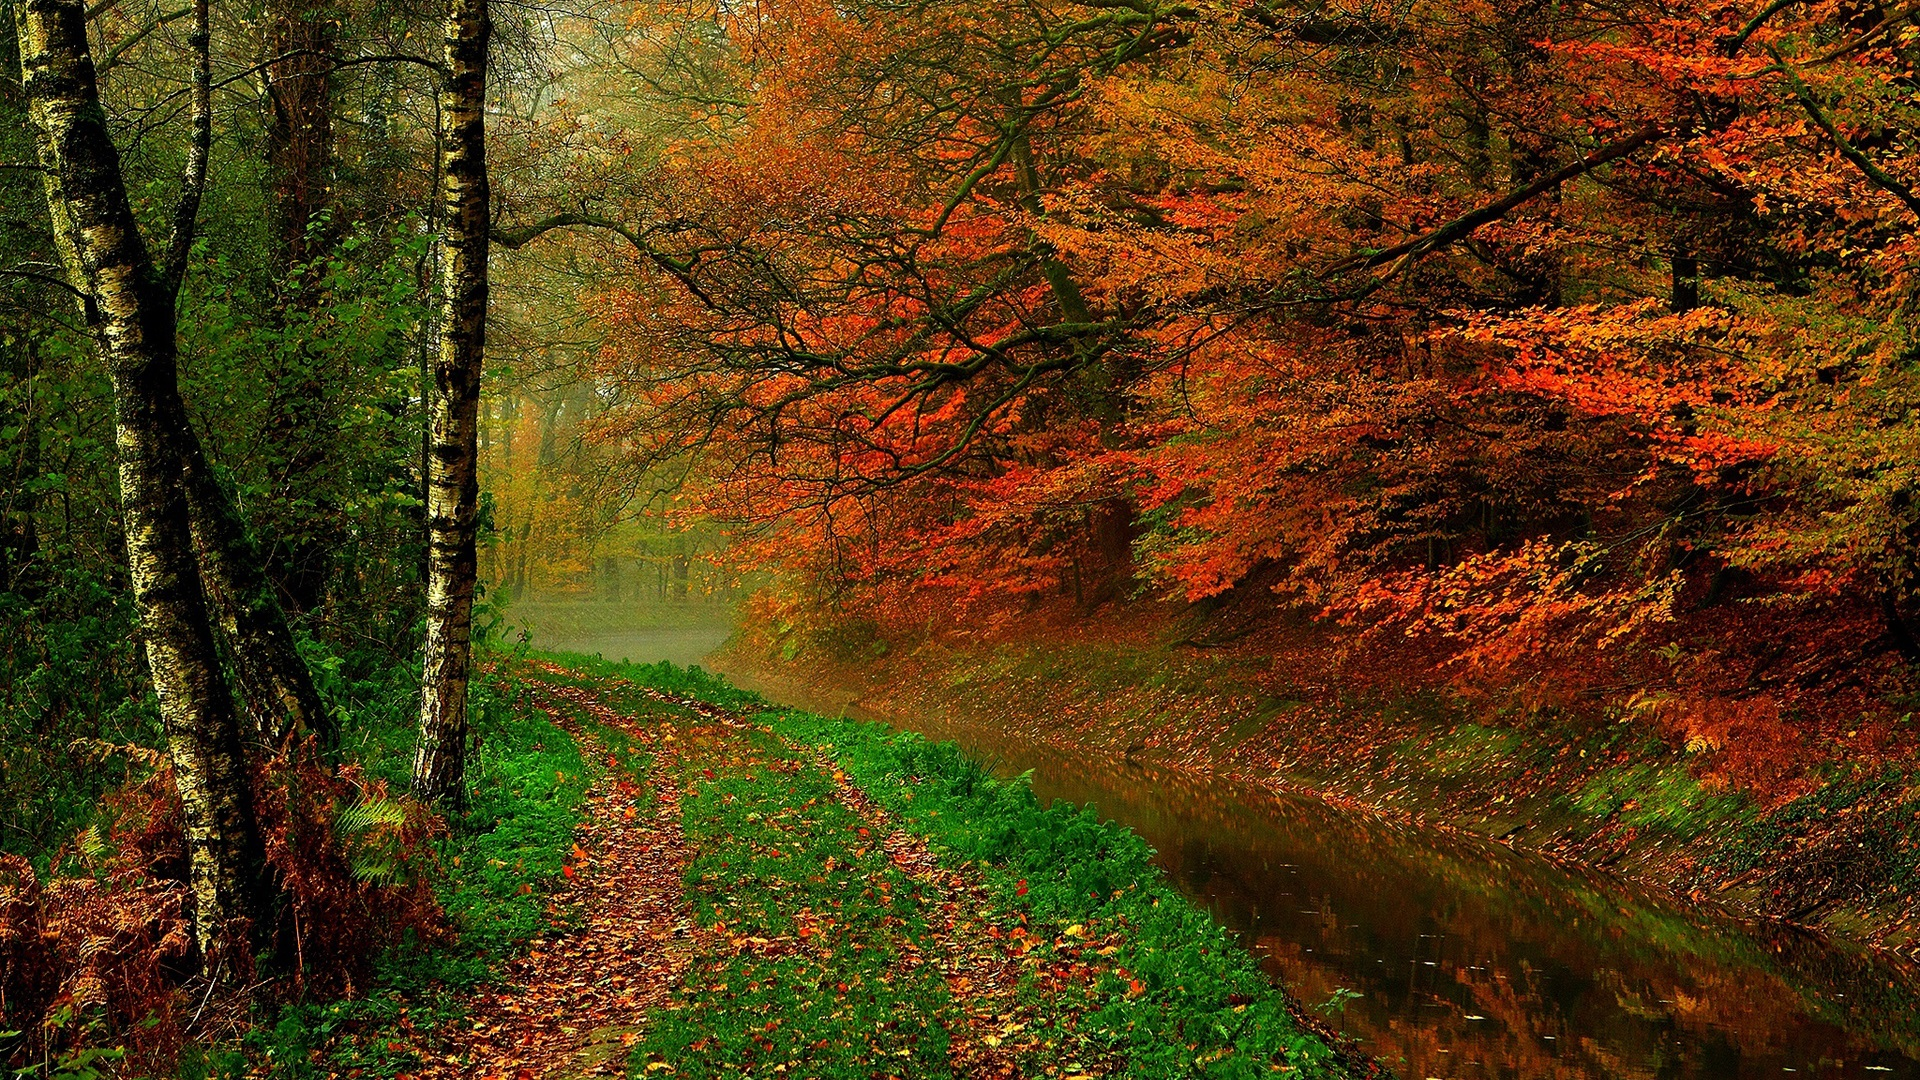 autumn leaf tree forest - photo #16